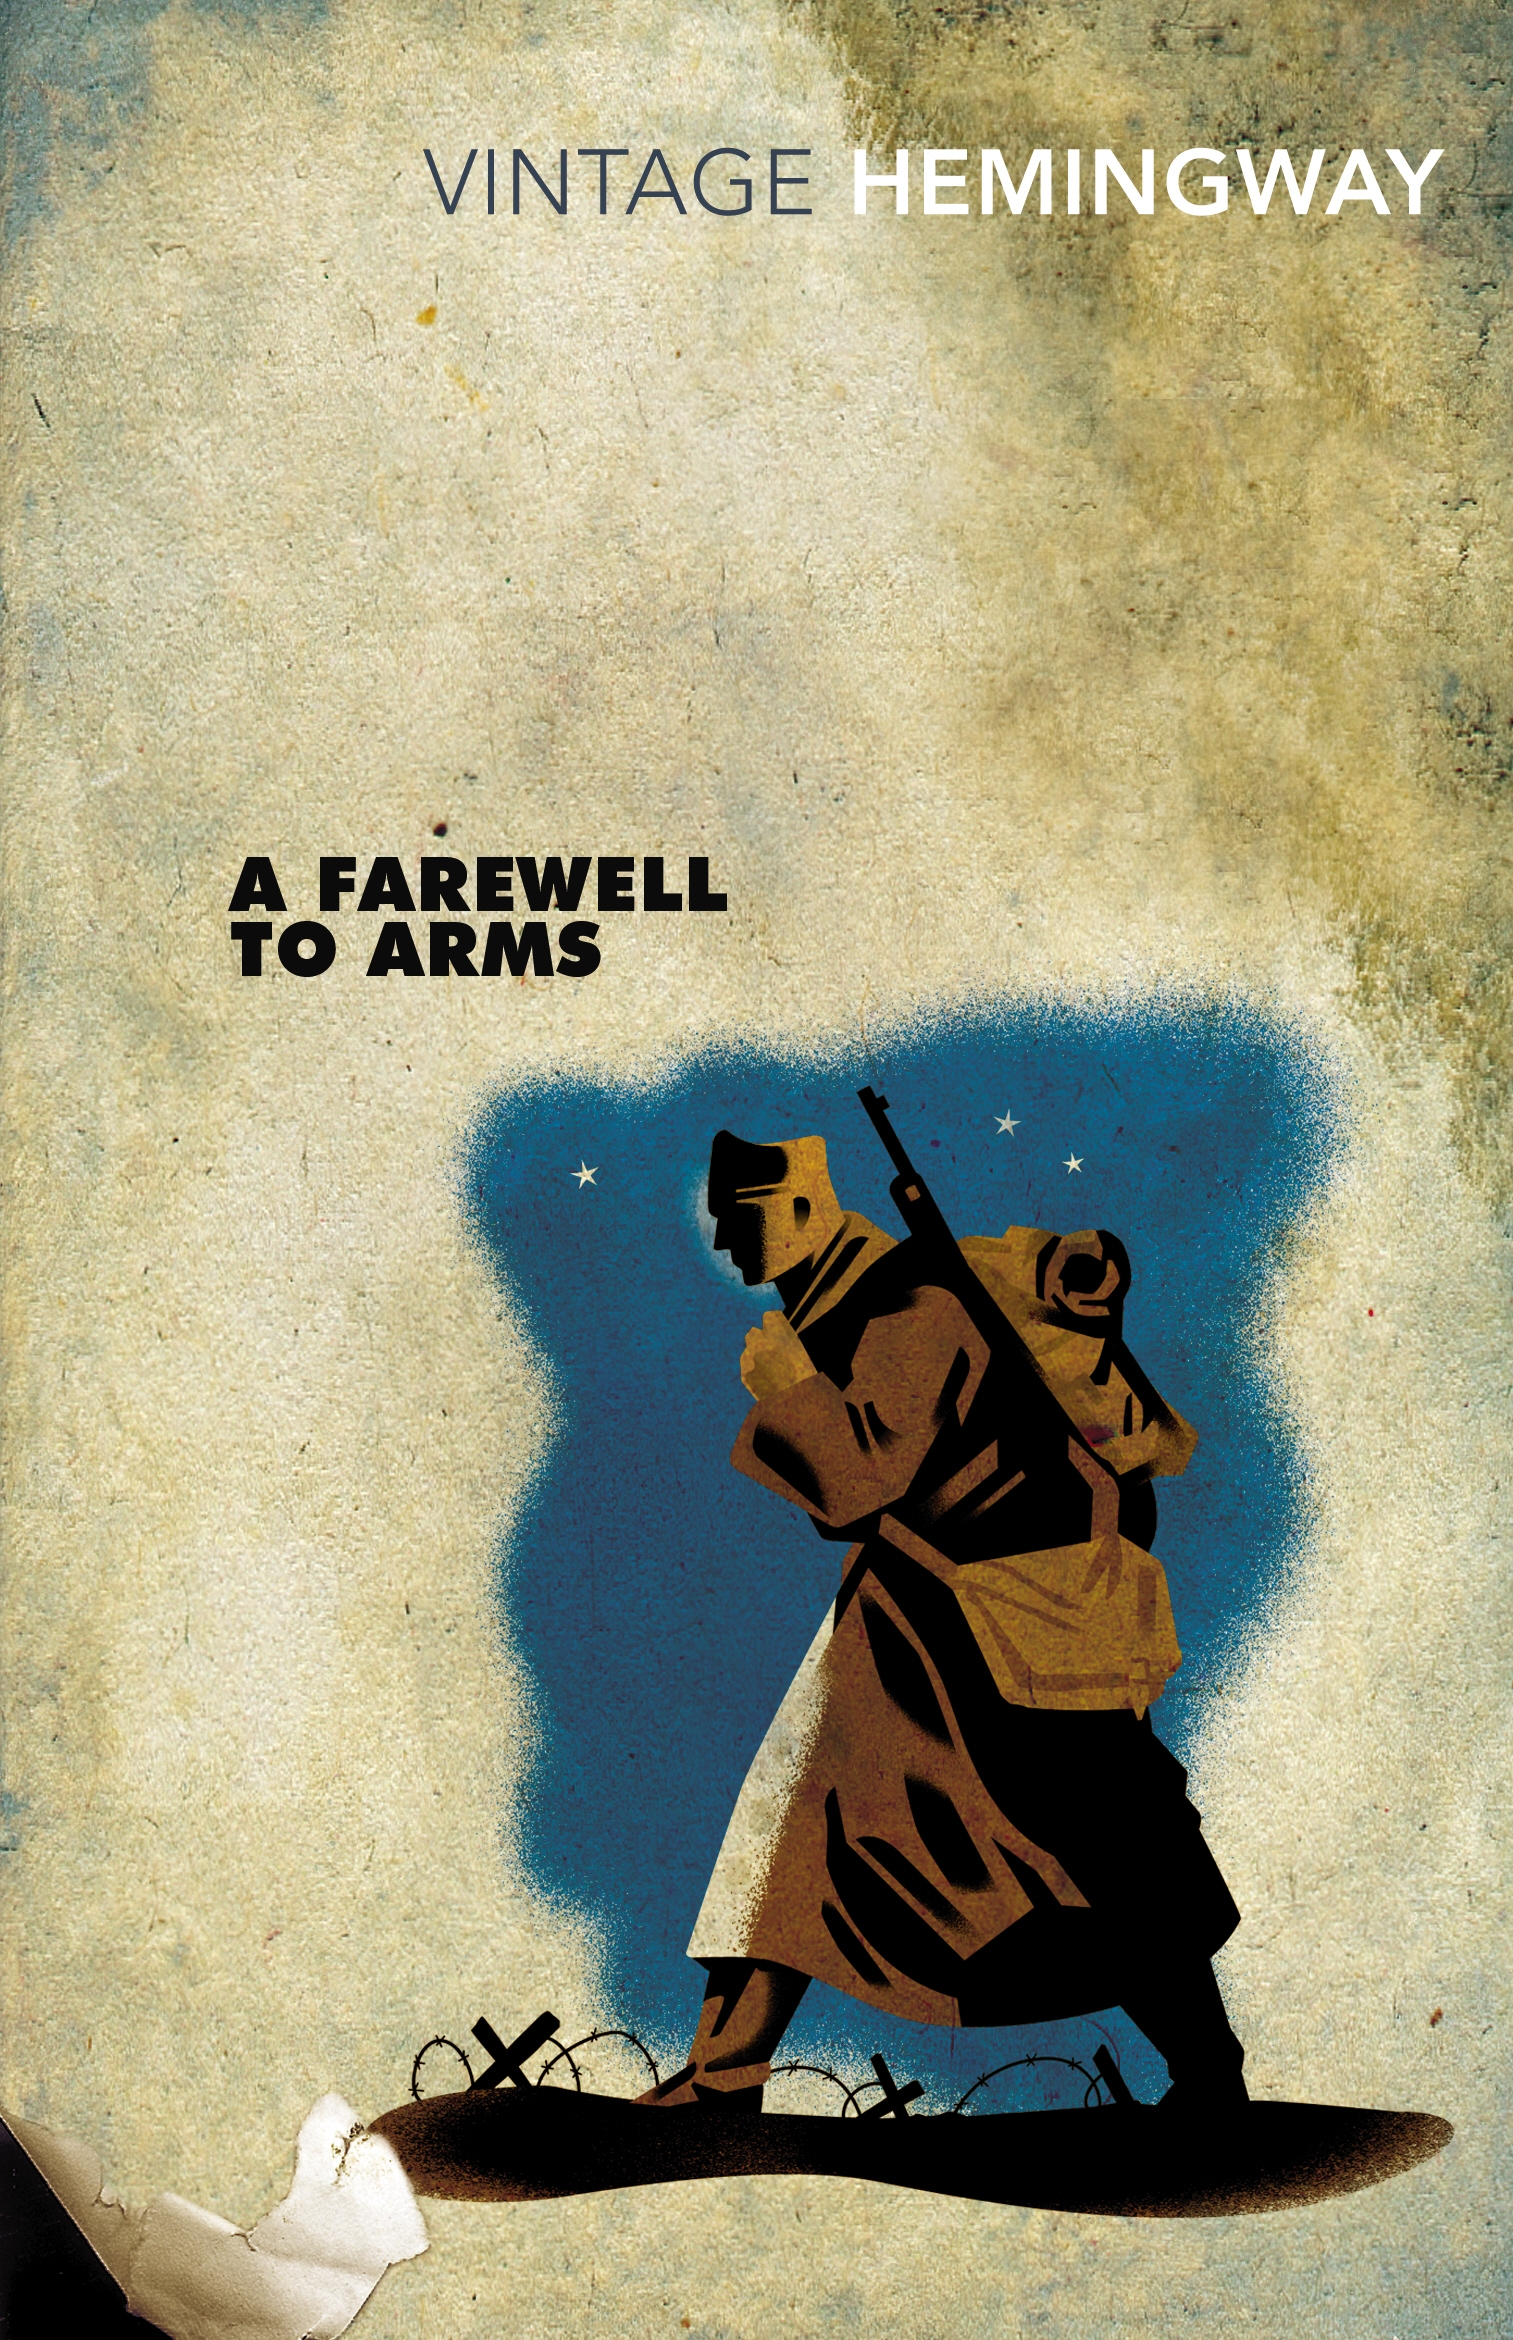 literary analysis of the novel a farewell to arms A farewell to arms, by ernest hemingway, is a typical love story  the theme  that hemingway emphasizes throughout the novel is the search for order in a.